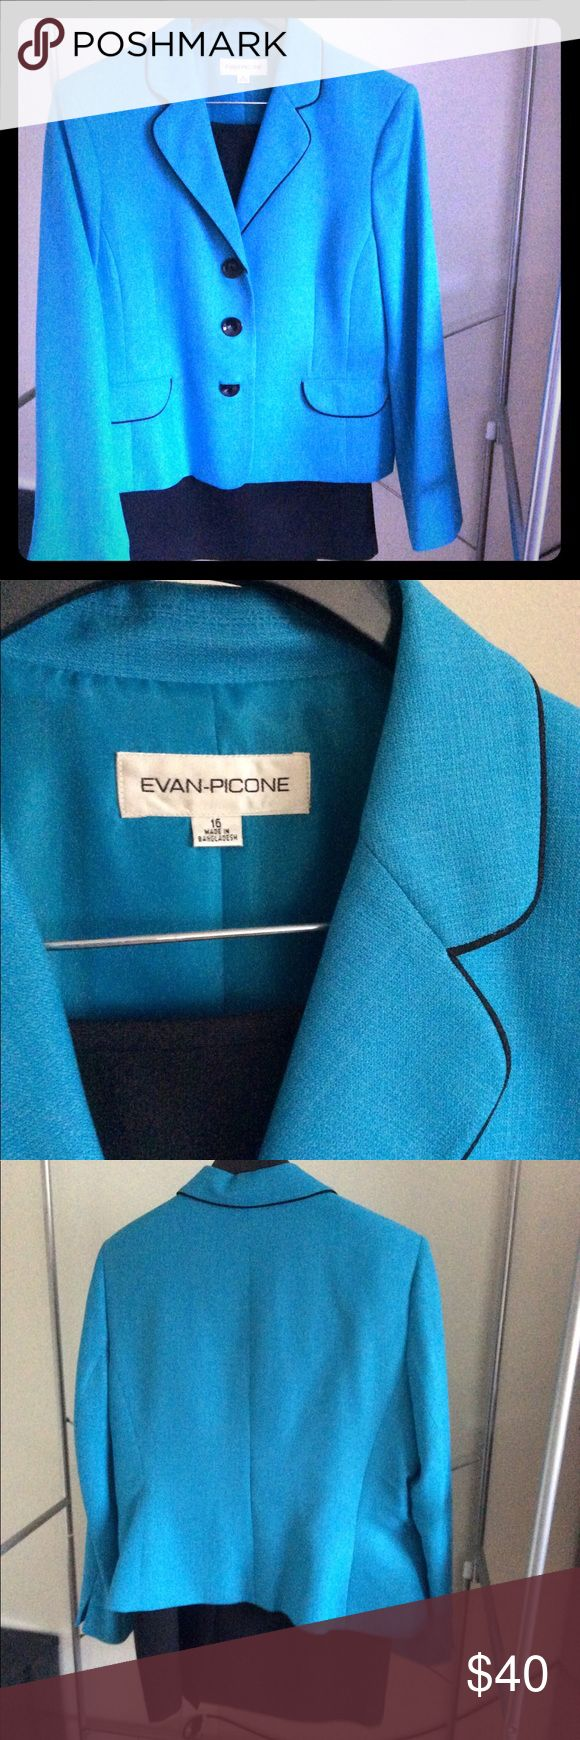 Evan Picone size 16 light blue blazer Evan Picone size 16 light blue blazer. Skirt in separate listing Evan Picone Jackets & Coats Blazers